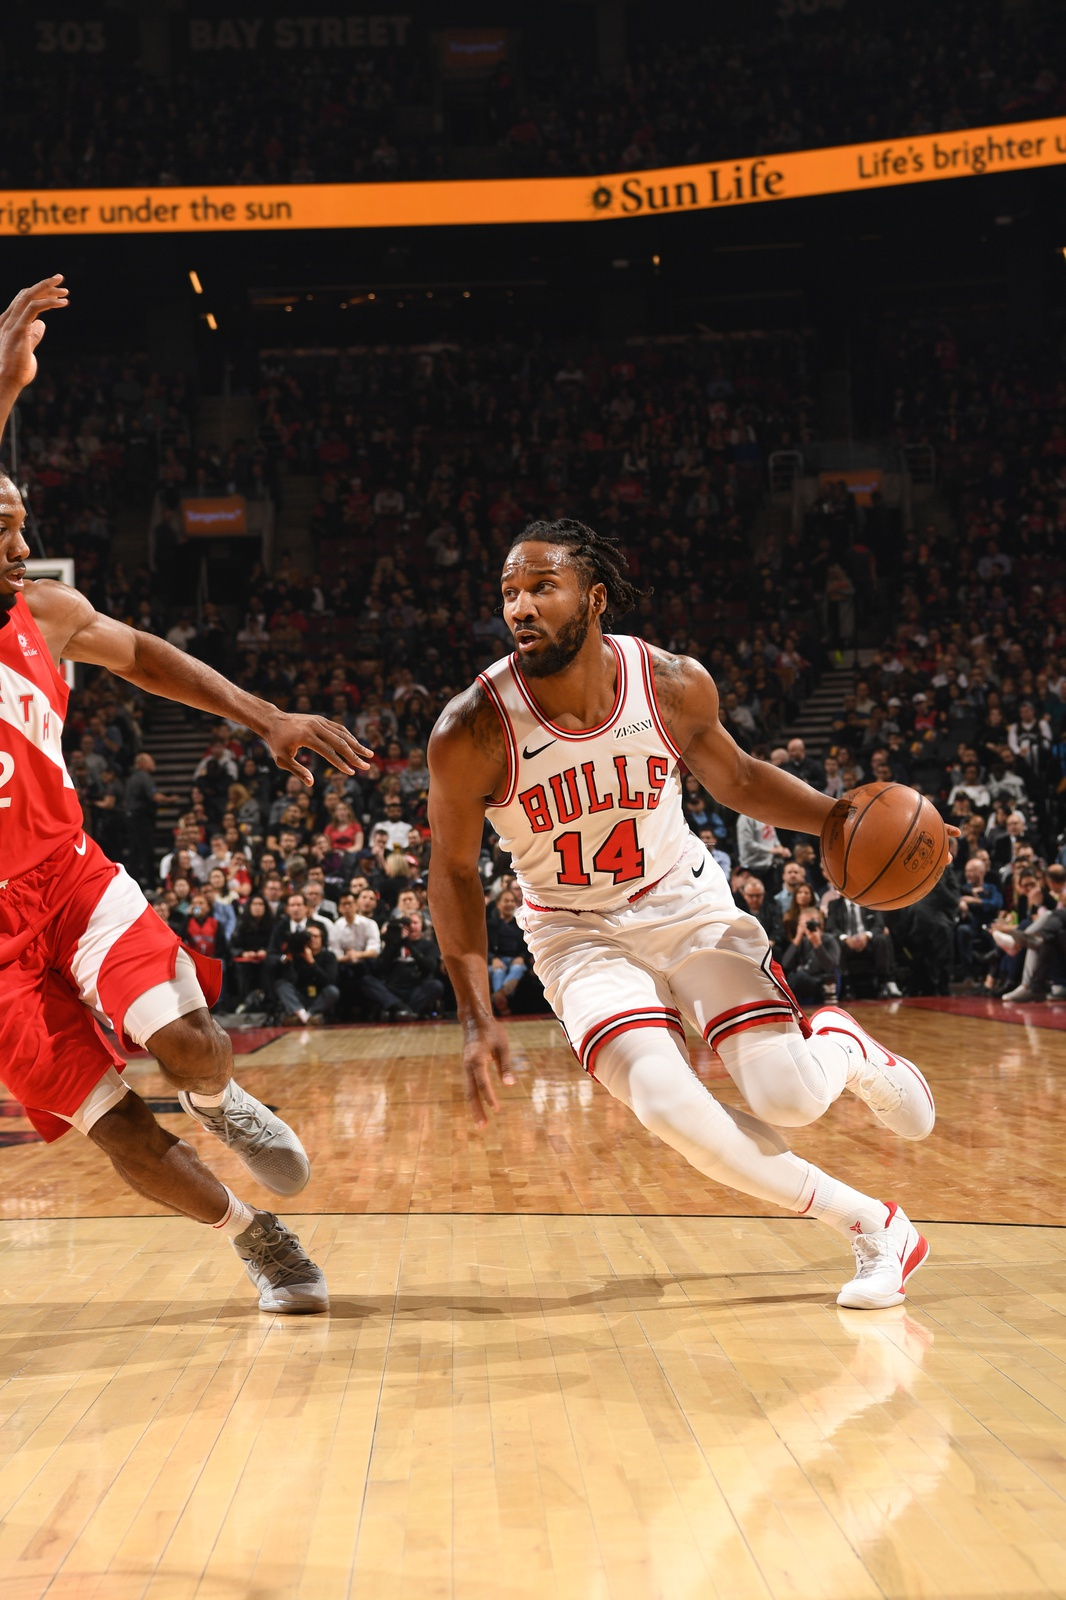 Wayne Selden #14 of the Chicago Bulls handles the ball against the Toronto Raptors on March 26, 2019 at the Scotiabank Arena in Toronto, Ontario, Canada.